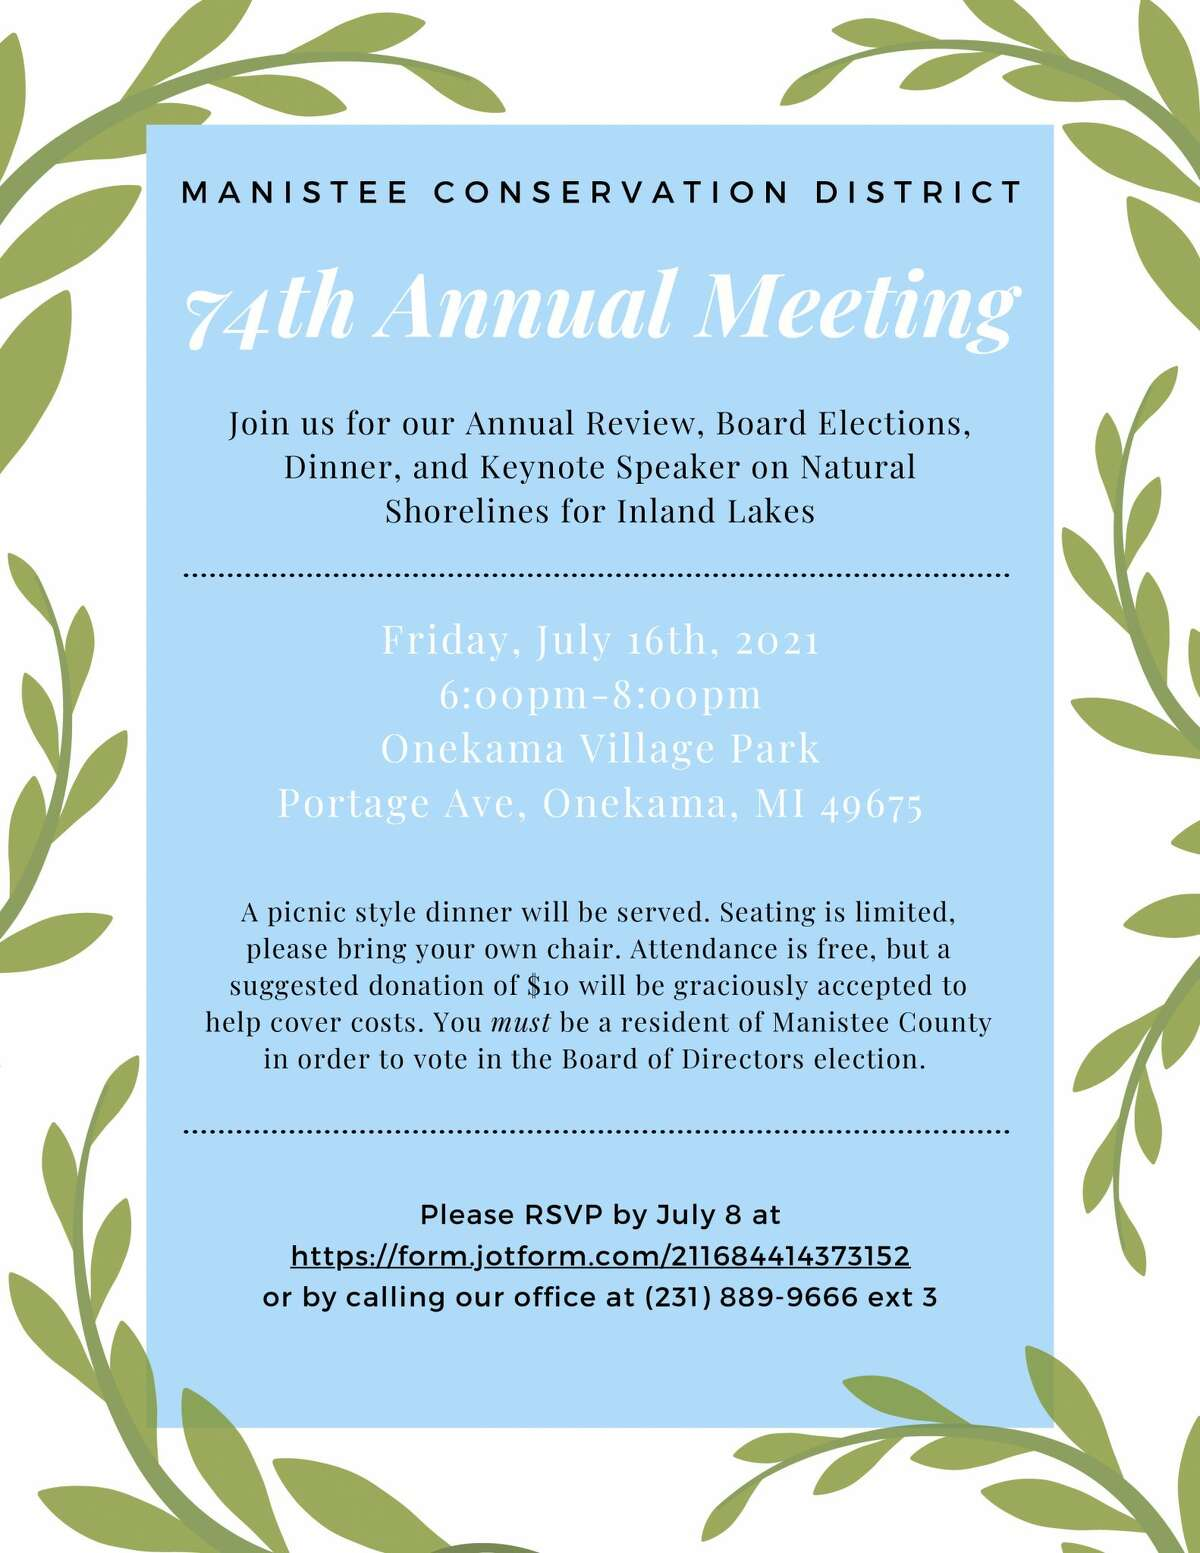 The 74th annual Manistee Conservation District meeting will be held on Friday, July 16 at the Onekama Village Park.